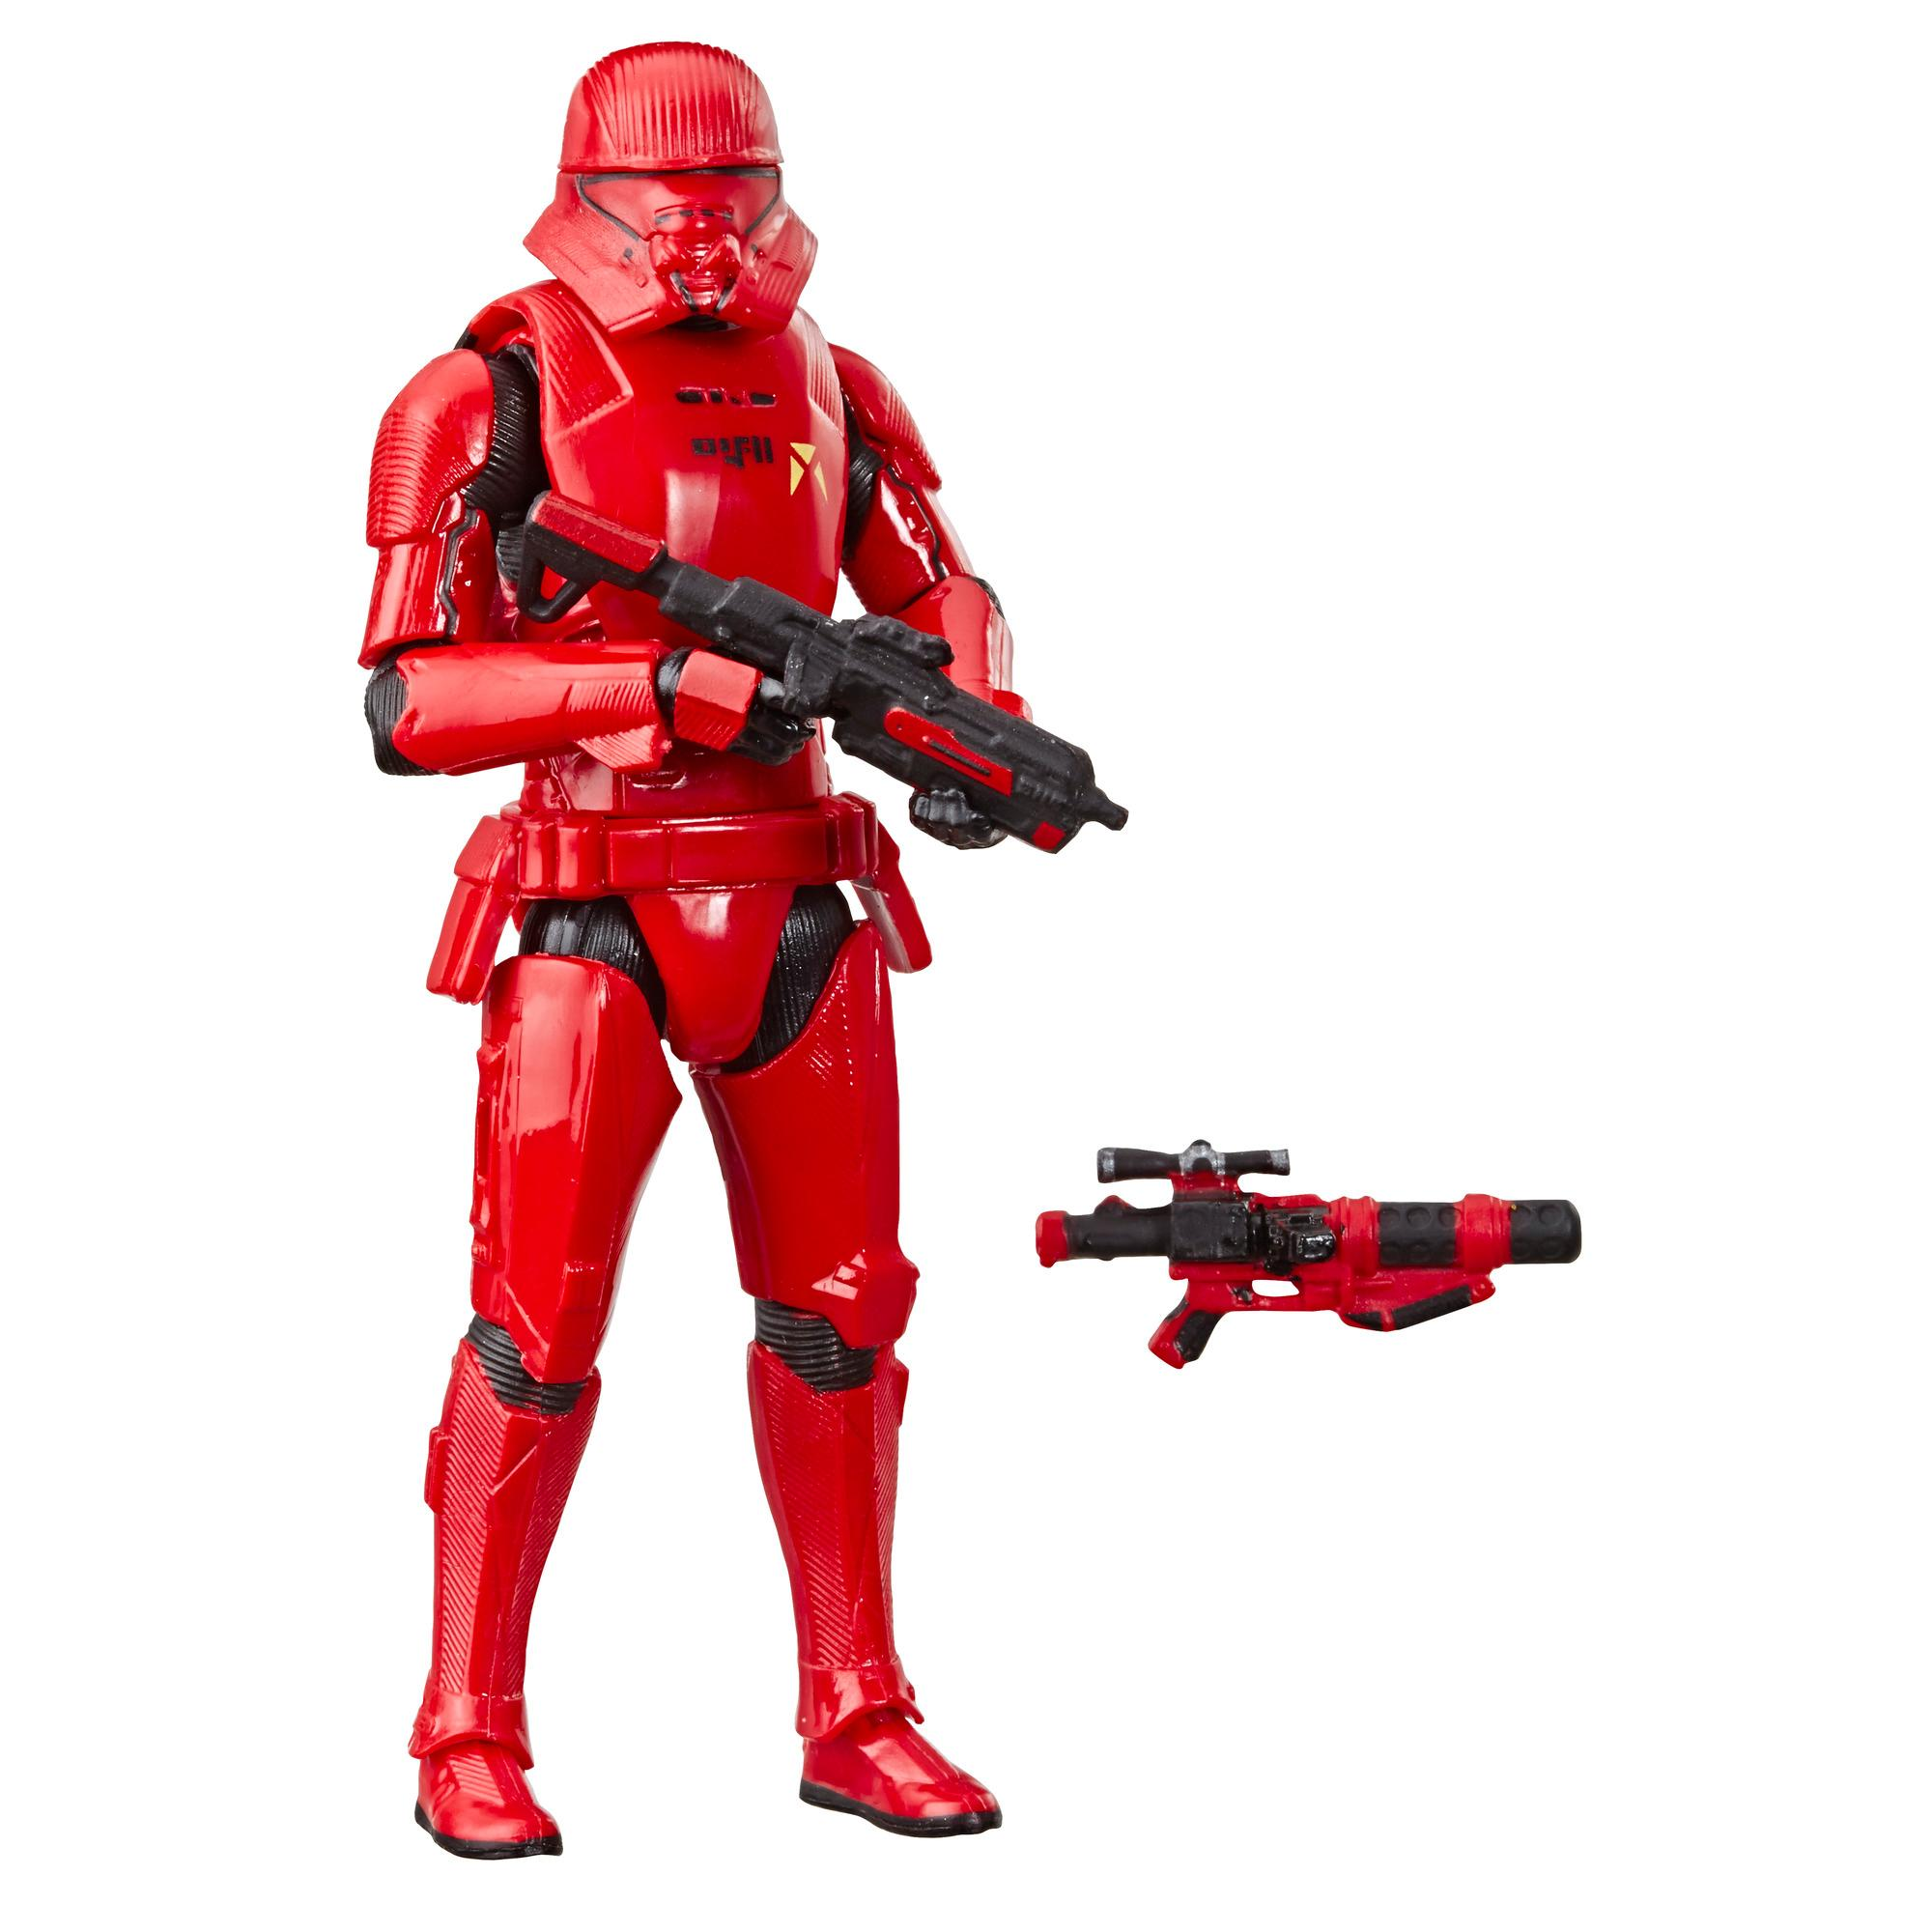 Star Wars The Vintage Collection Star Wars: The Rise of Skywalker Sith Jet Trooper Toy, 3.75-inch Scale Figure, 4 and Up